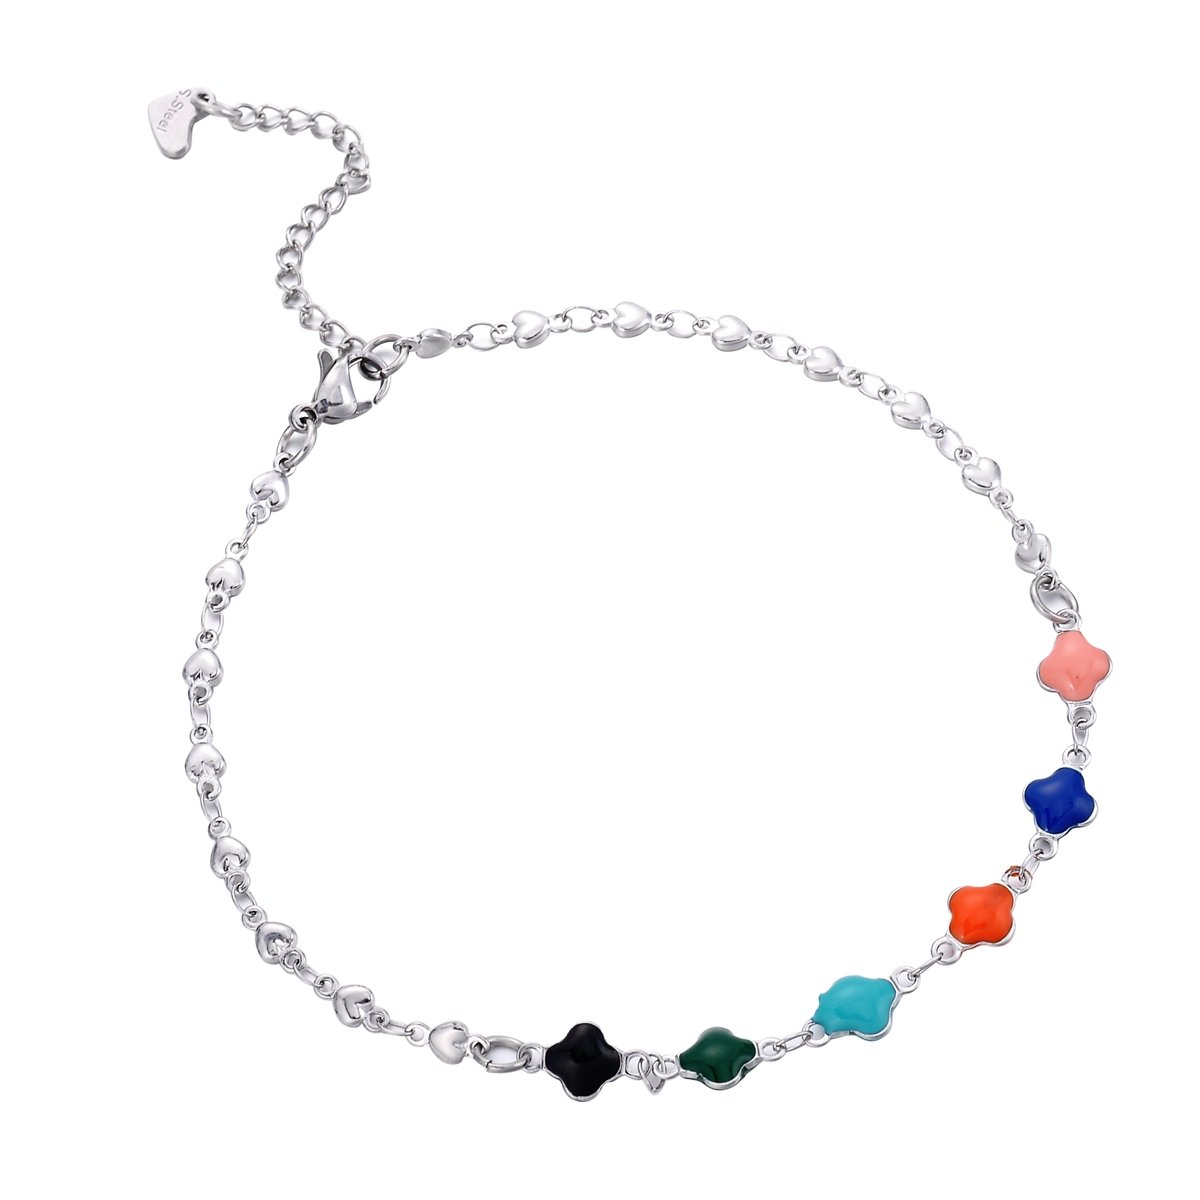 HooAMI Stainless Steel Multi-Colored Clover Heart Chain Anklet Bracelet Adjustable